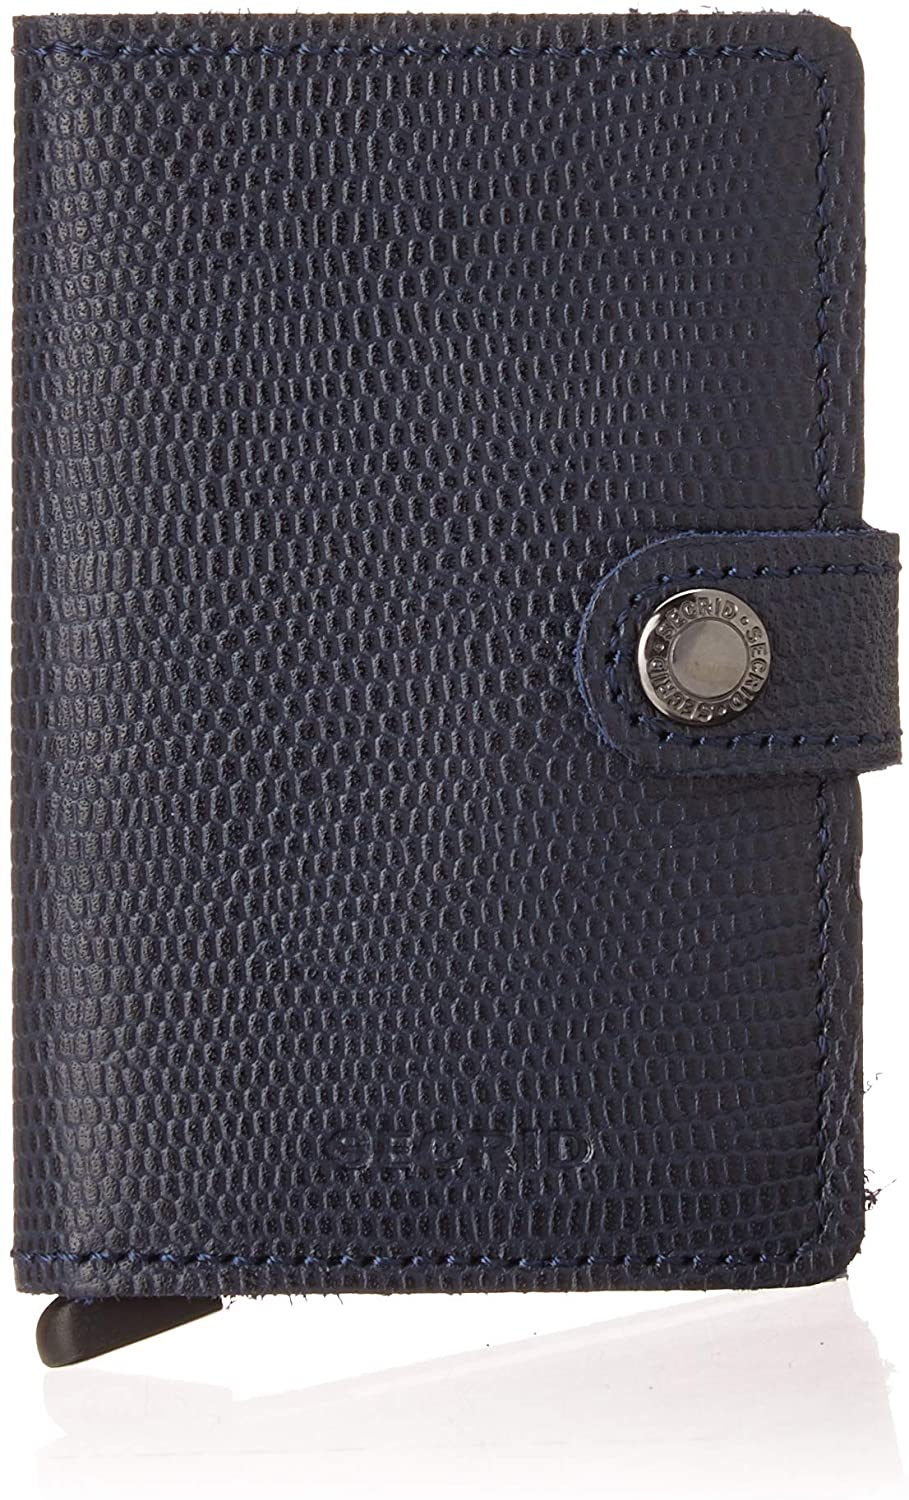 Secrid Miniwallet Rango Blue Titanium Leather Wallet RFID protected